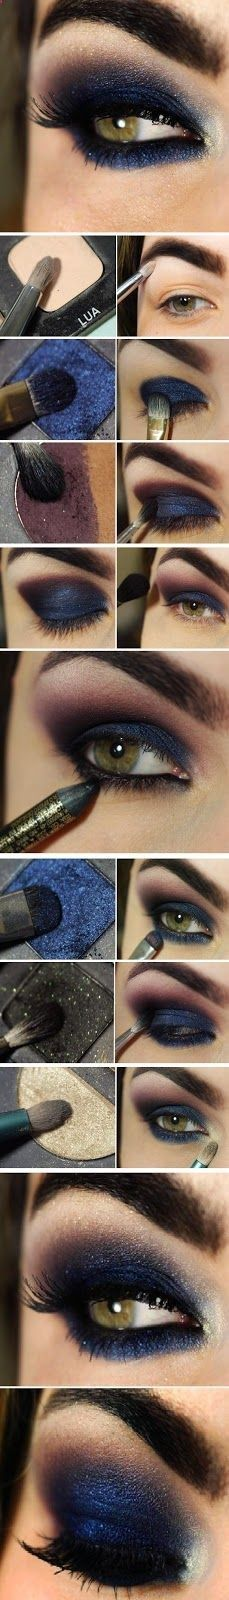 Image via How to Apply Smokey Eyeshadow Step by Step Image via See make-up ideas Step by Step. Make-up in purple and blue tones. Image via Make-up lessons for beginners as beautif Pretty Makeup, Love Makeup, Makeup Tips, Makeup Looks, Makeup Tutorials, Makeup Ideas, Makeup Products, Eyeshadow Tutorials, Worst Makeup